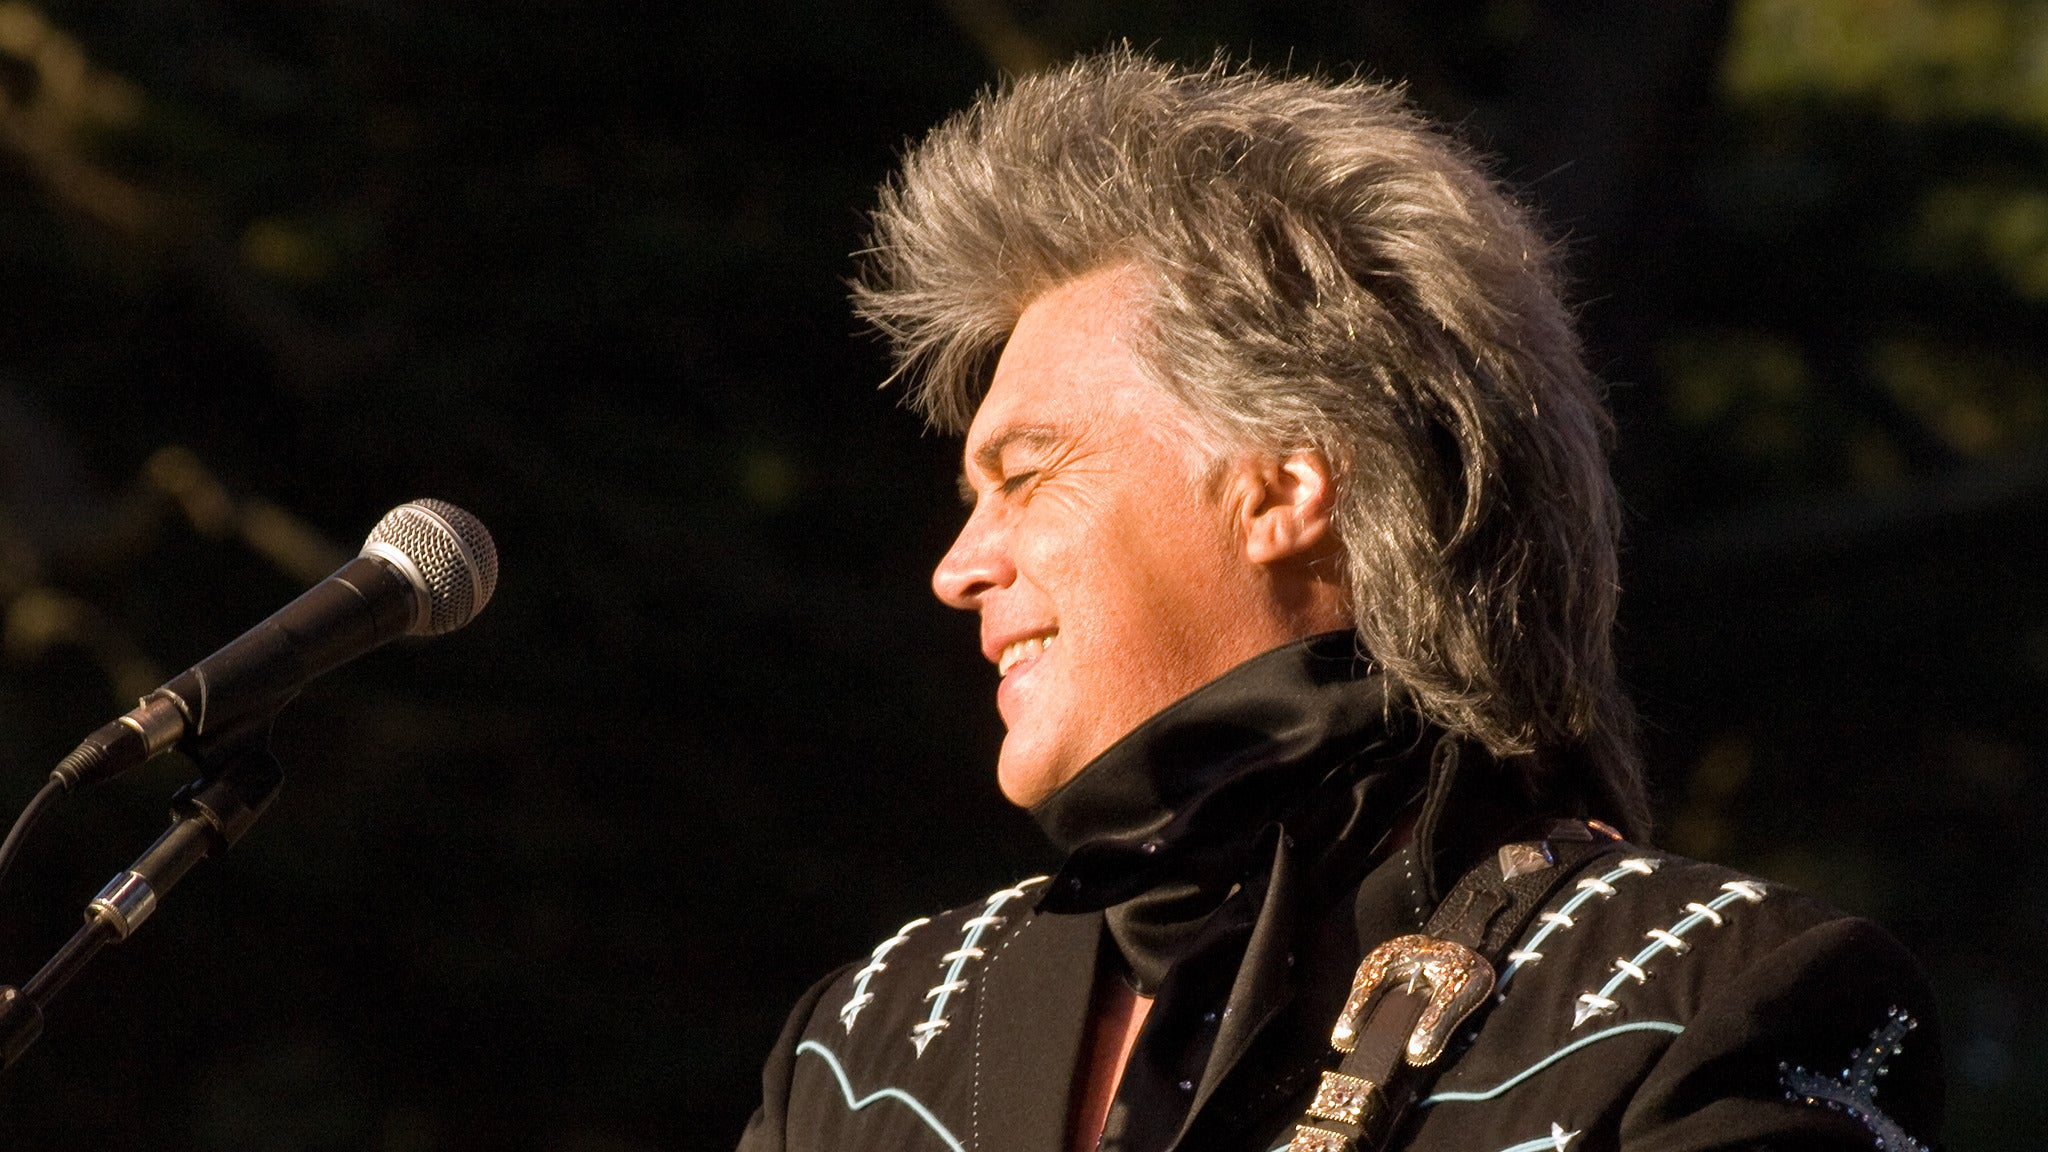 Marty Stuart at Golden Nugget - Biloxi